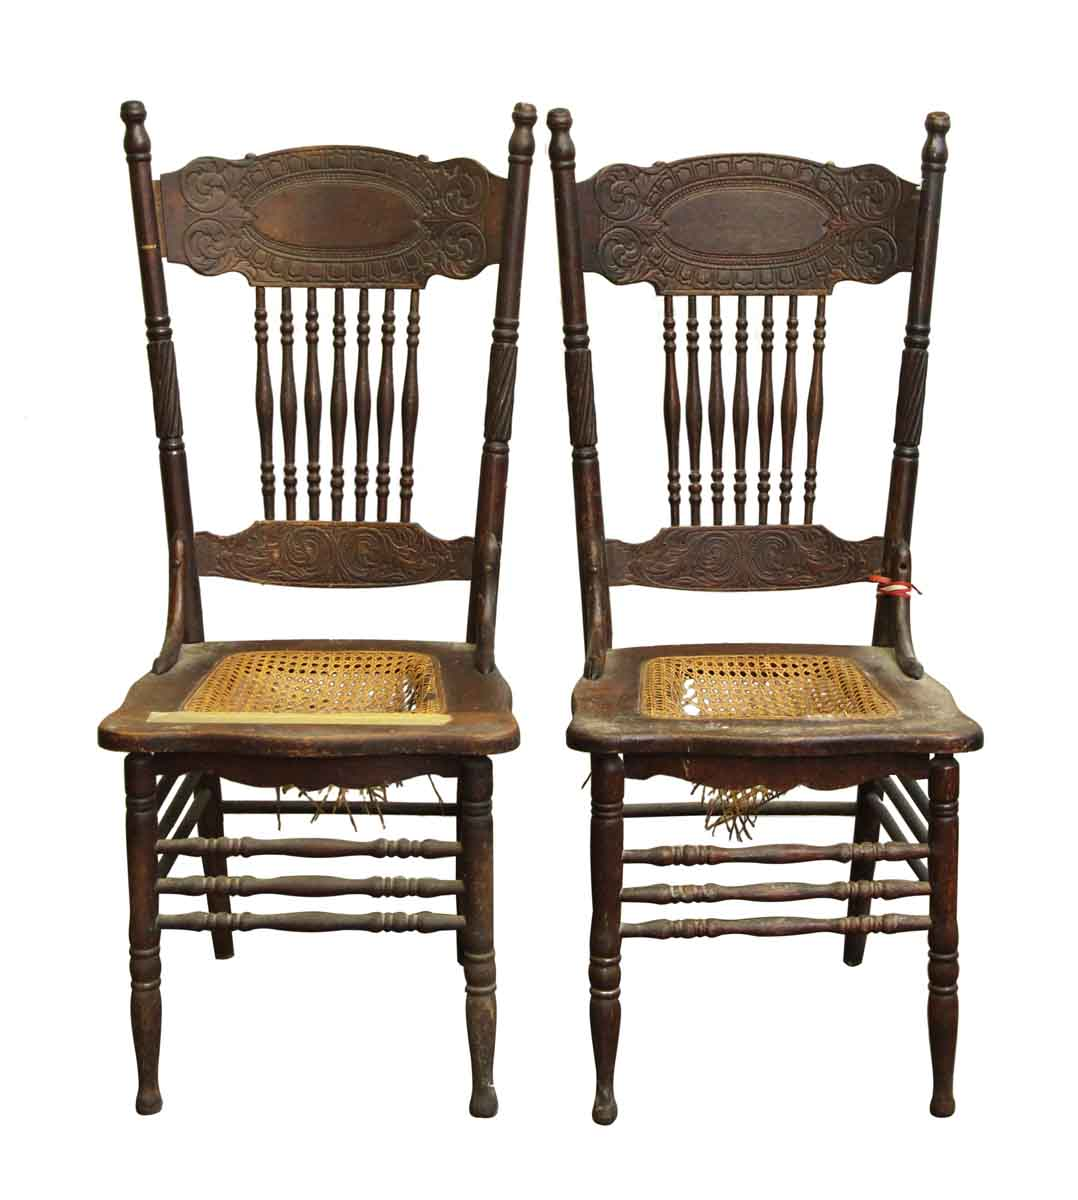 Antique Wooden Kitchen Chairs: Pair Of Vintage Wooden Chairs